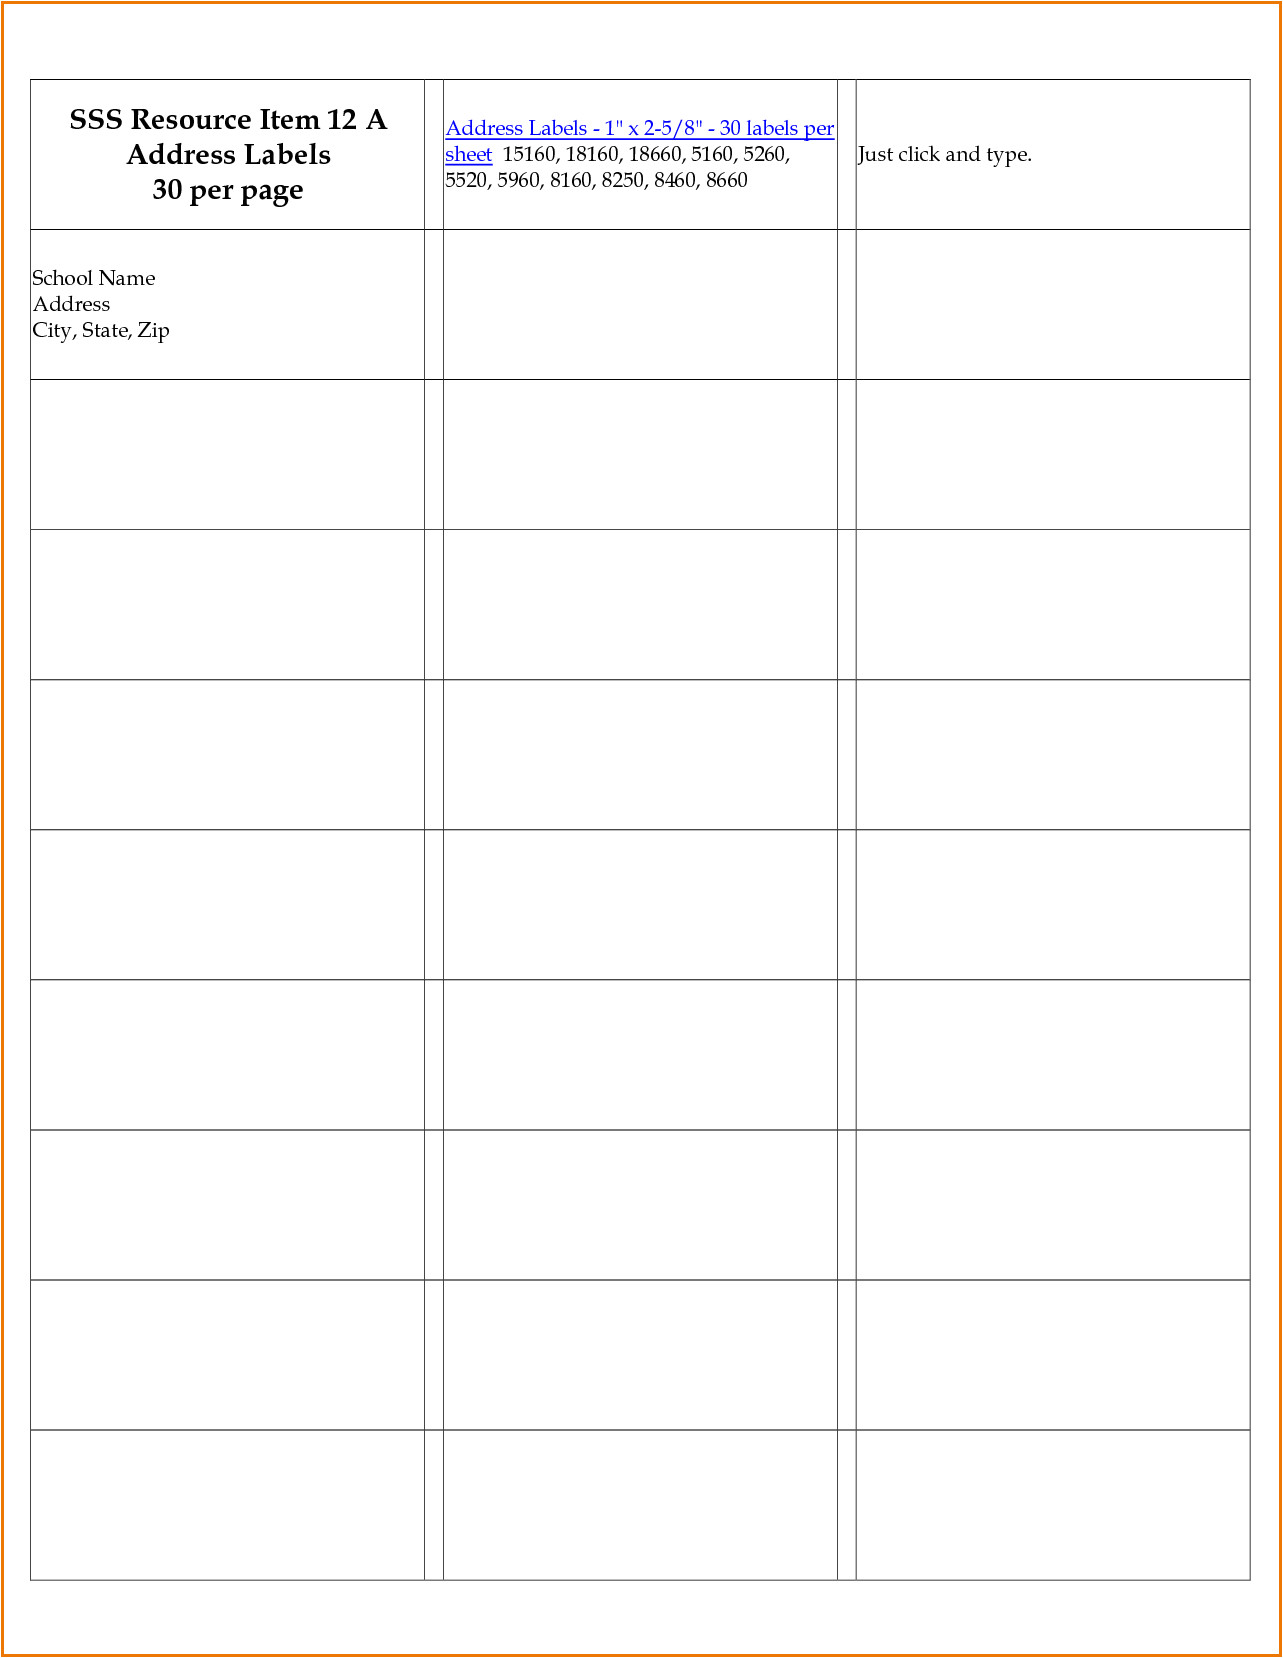 Avery Template 8660 for Microsoft Word Avery 8660 Template Divorce Document